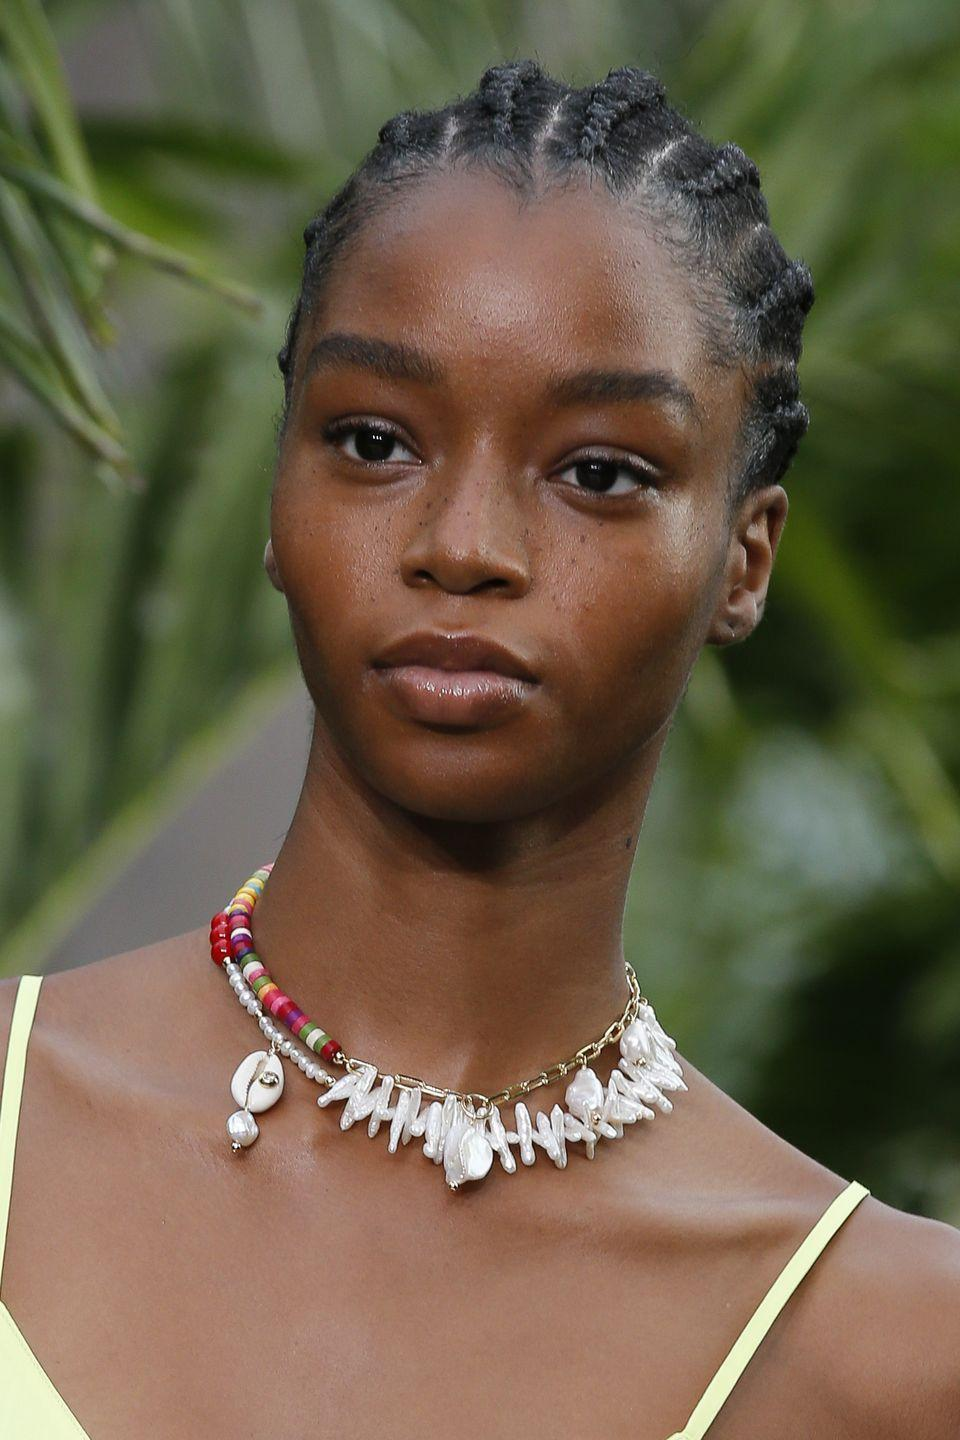 <p>Mix all your beaded jewels with pearls, shells, or medallion necklaces. </p><p><em>Jason Wu x Eliou</em></p>